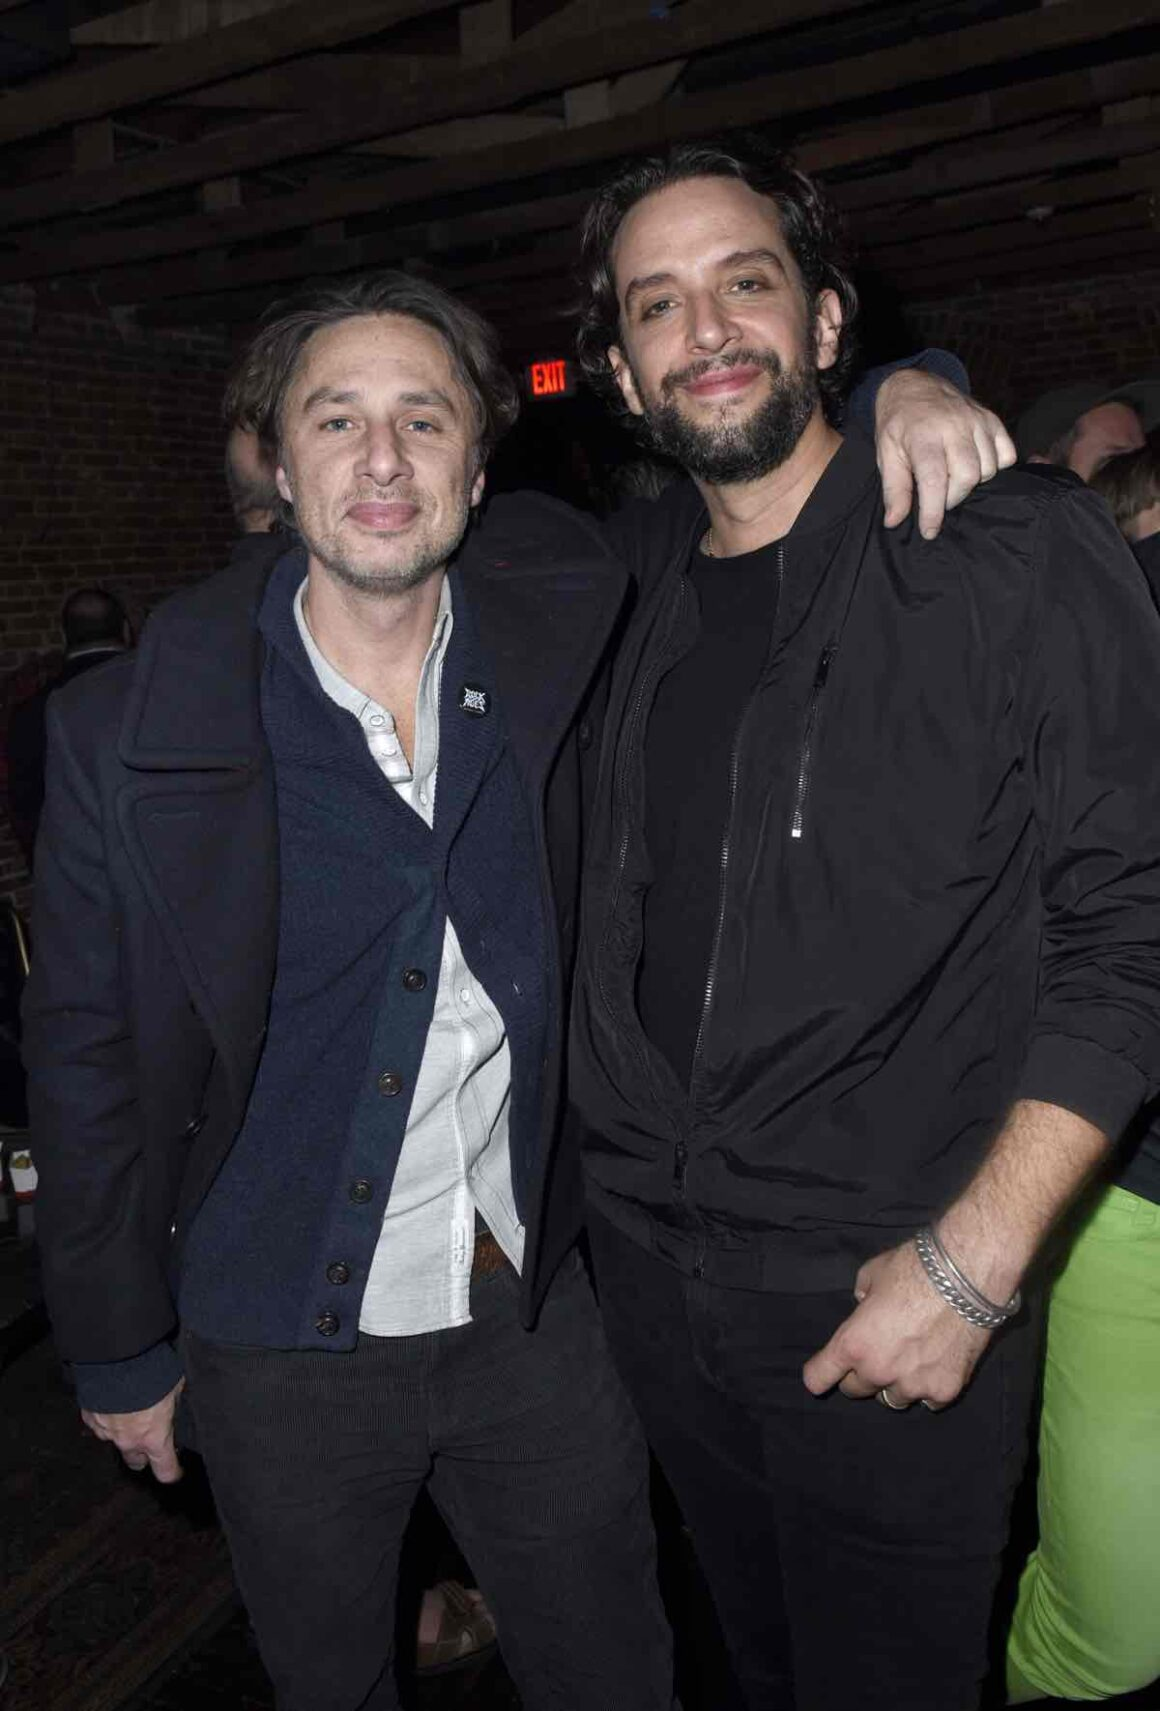 Zach Braff and Nick Cordero Preview Of Rock of Ages Hollywood At The Bourbon Room